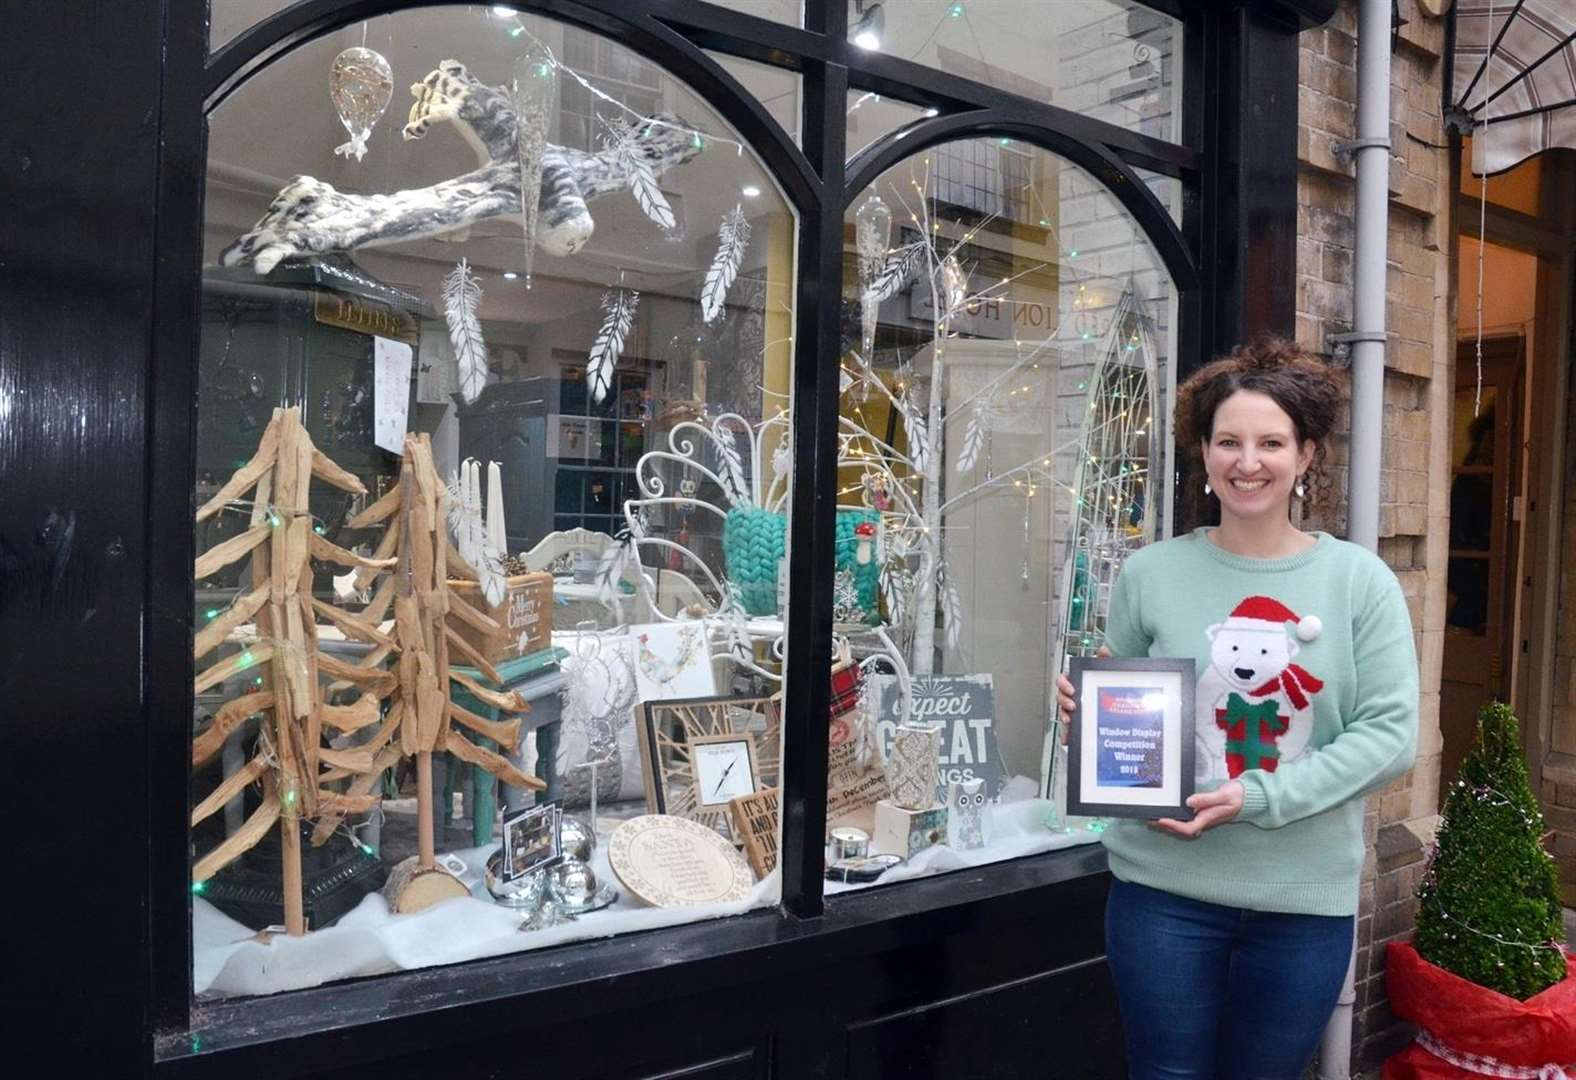 Pearl & Ruby judged to have best-dressed festive window